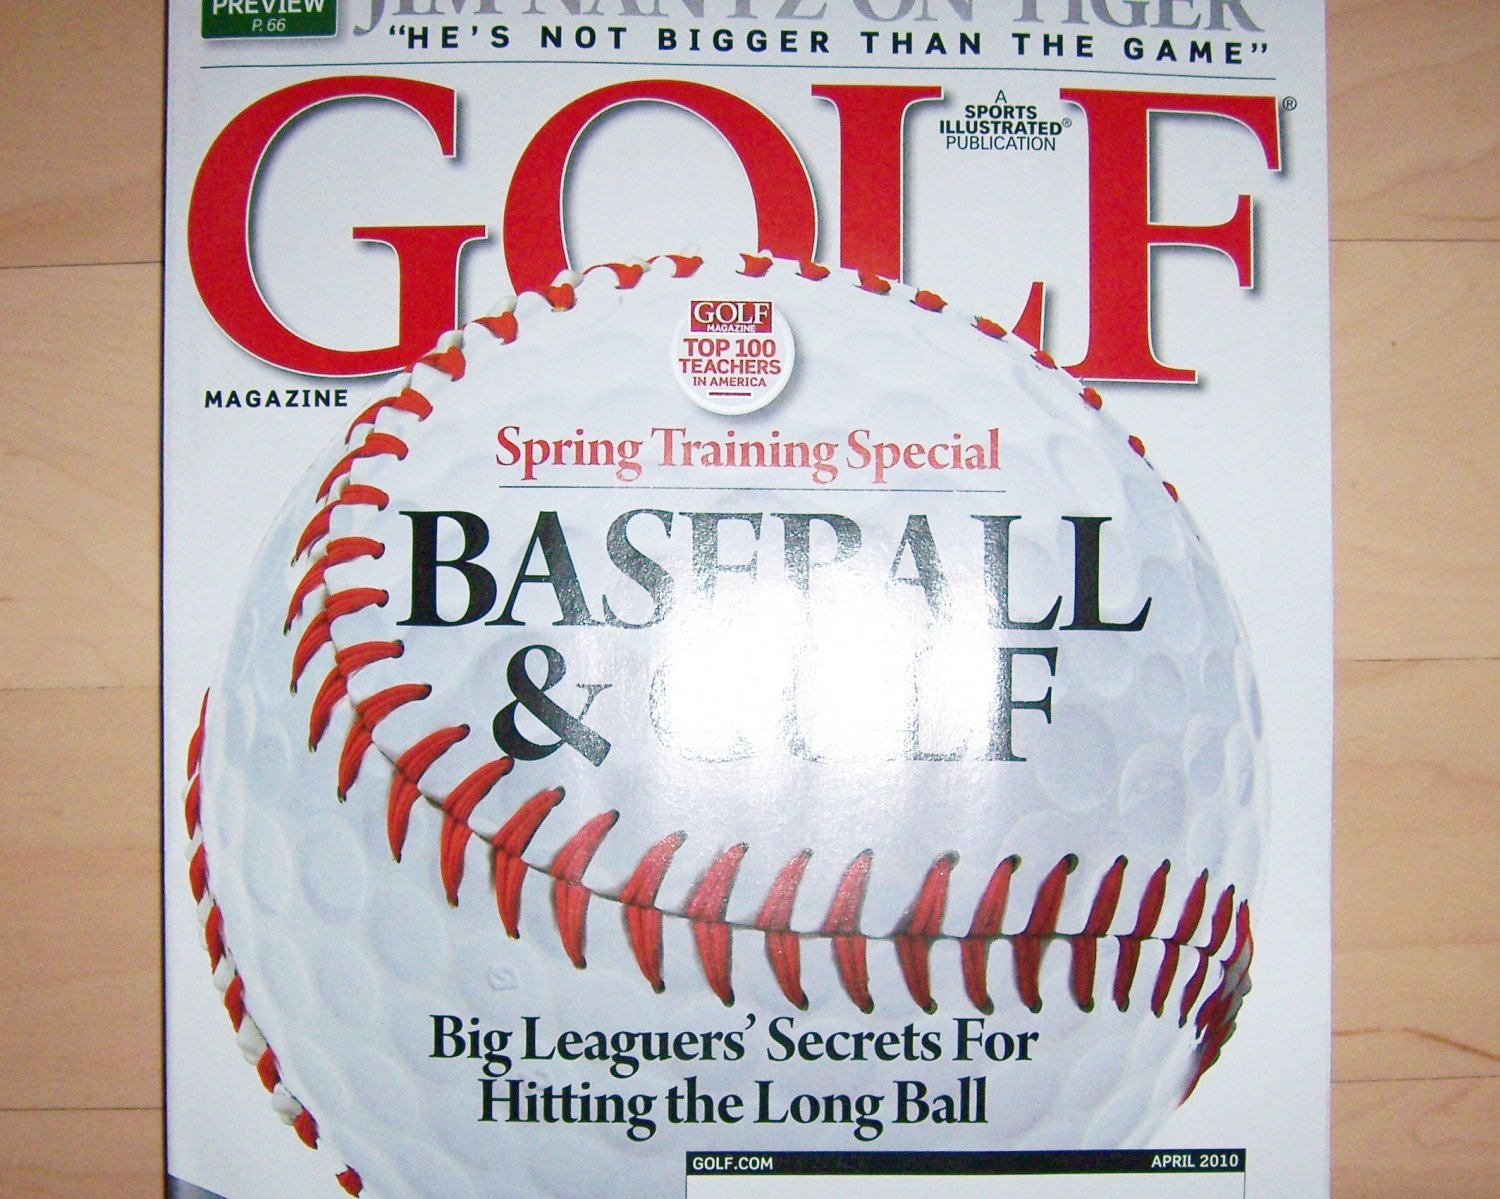 Golf Magazine April 2011 BNK1426